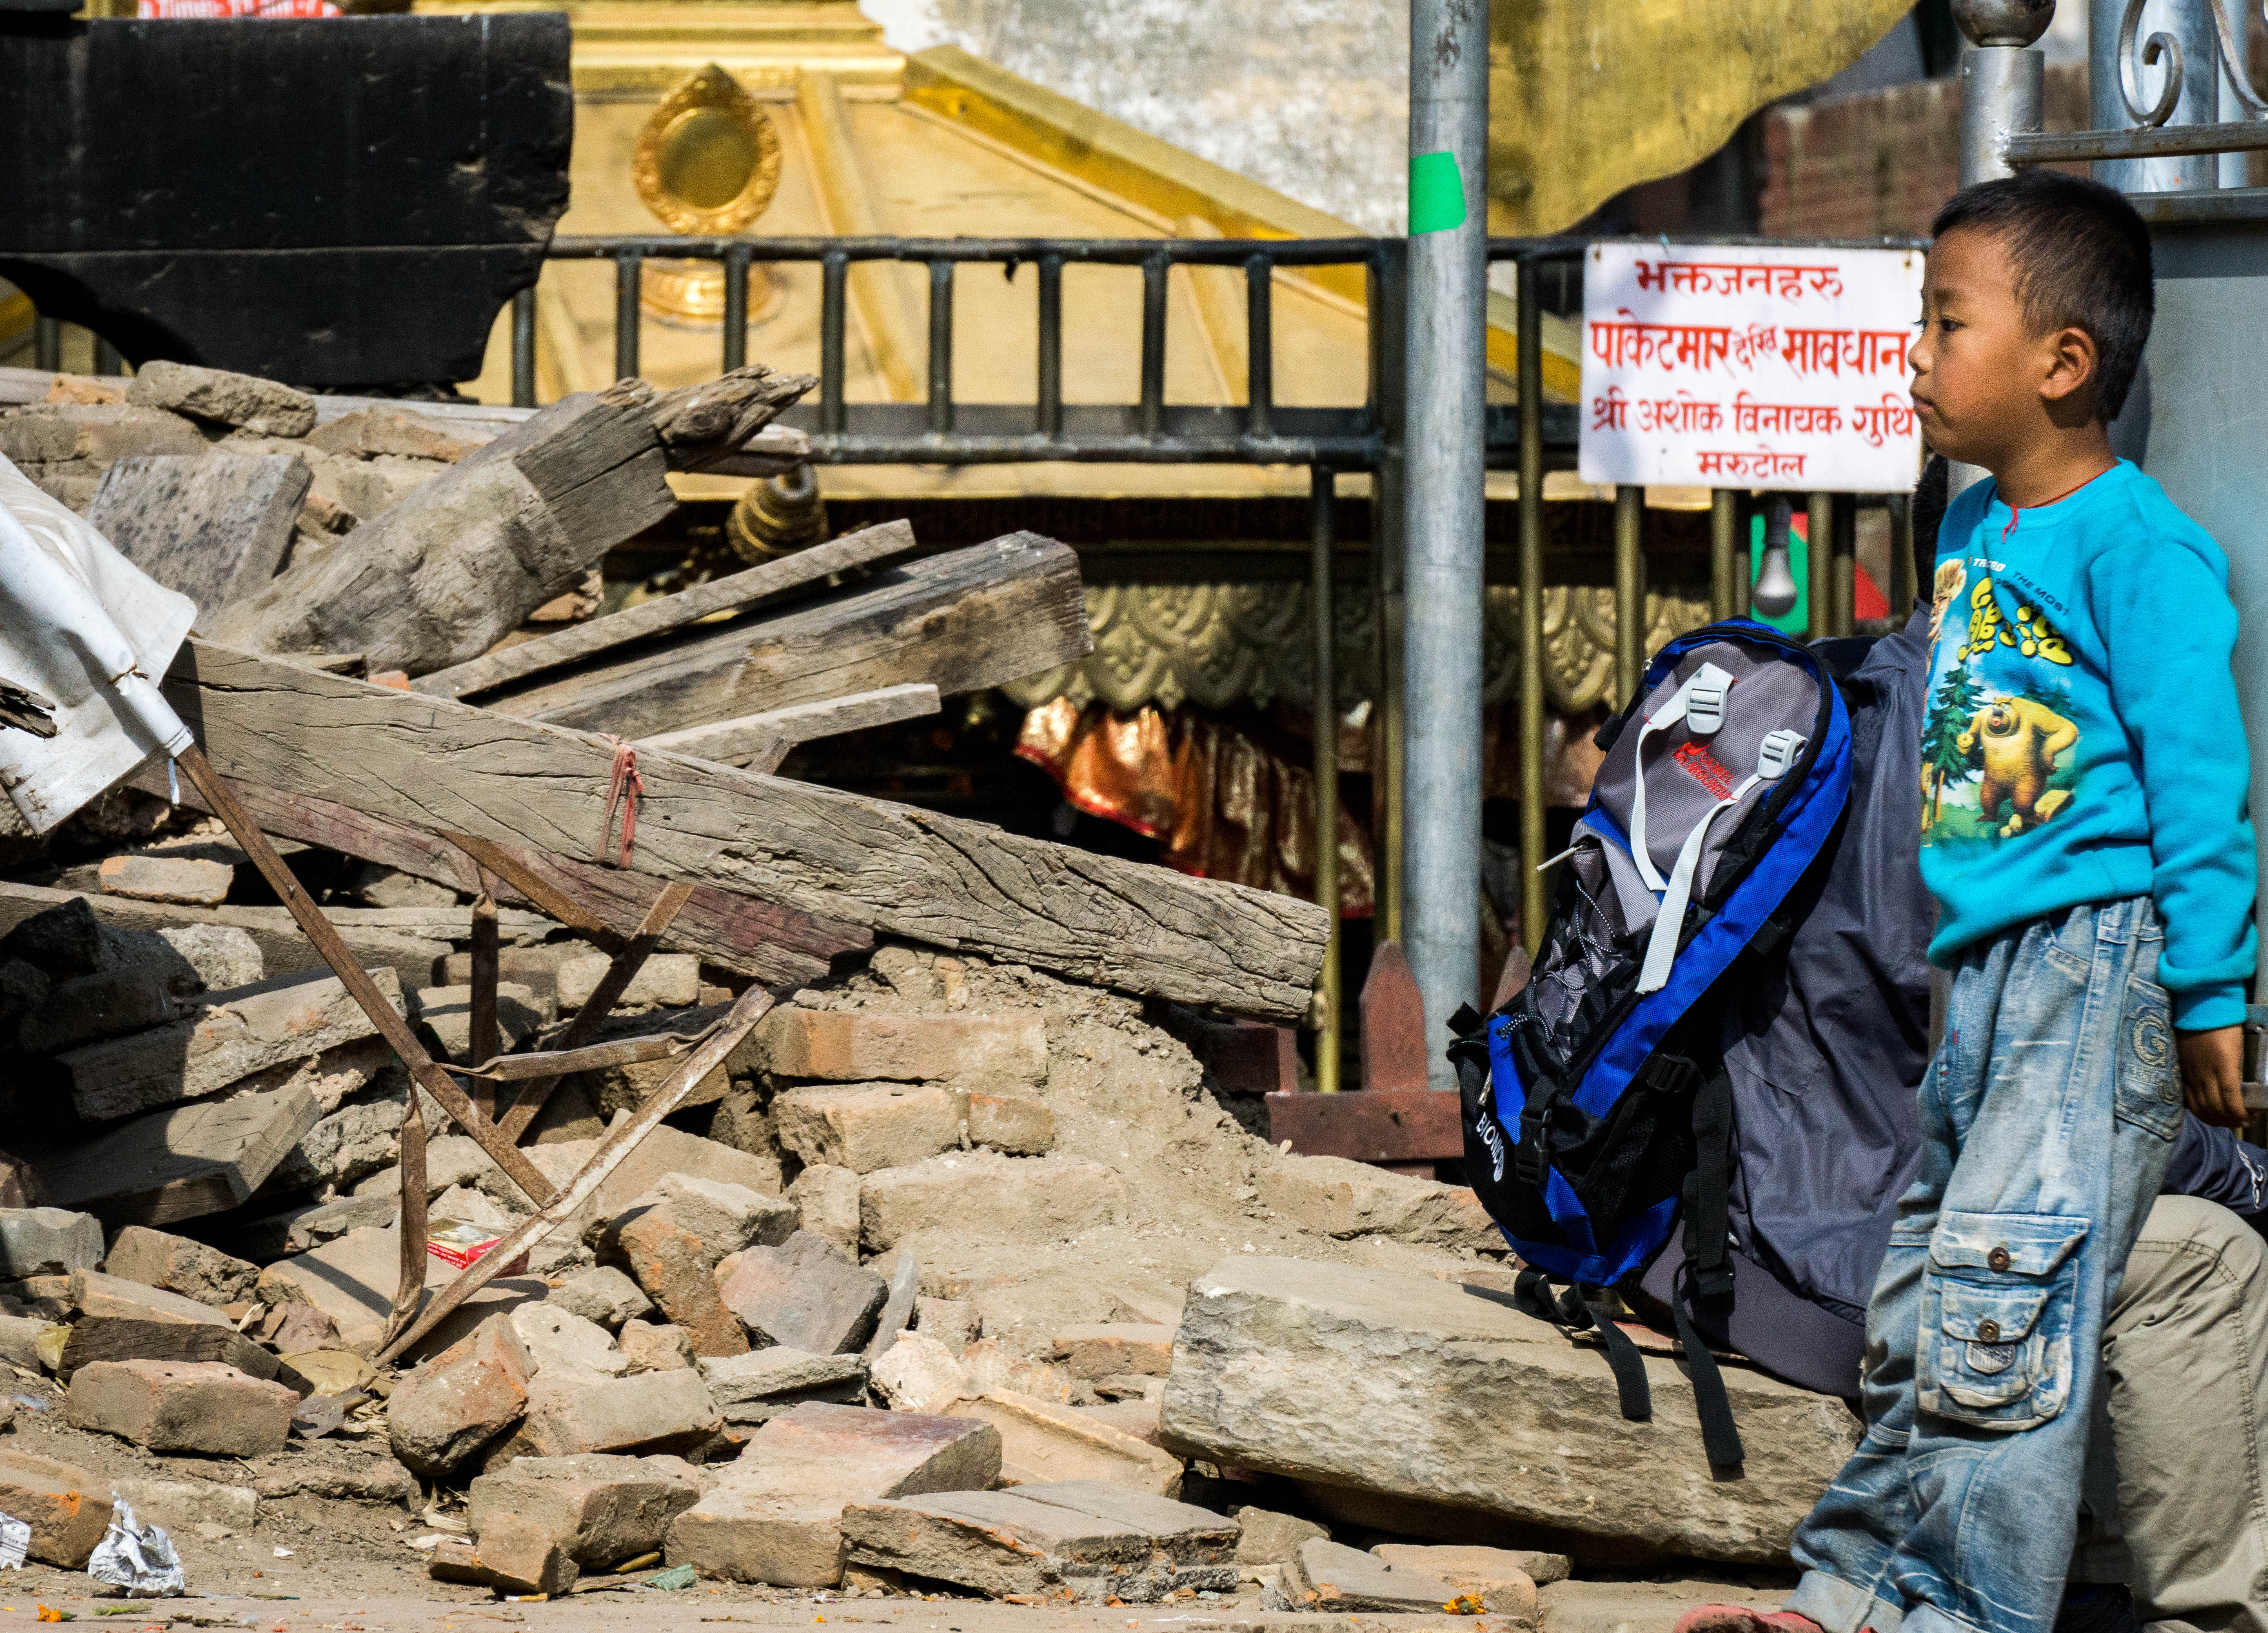 Child stands in rubble, Durbar Square, Kathmandu